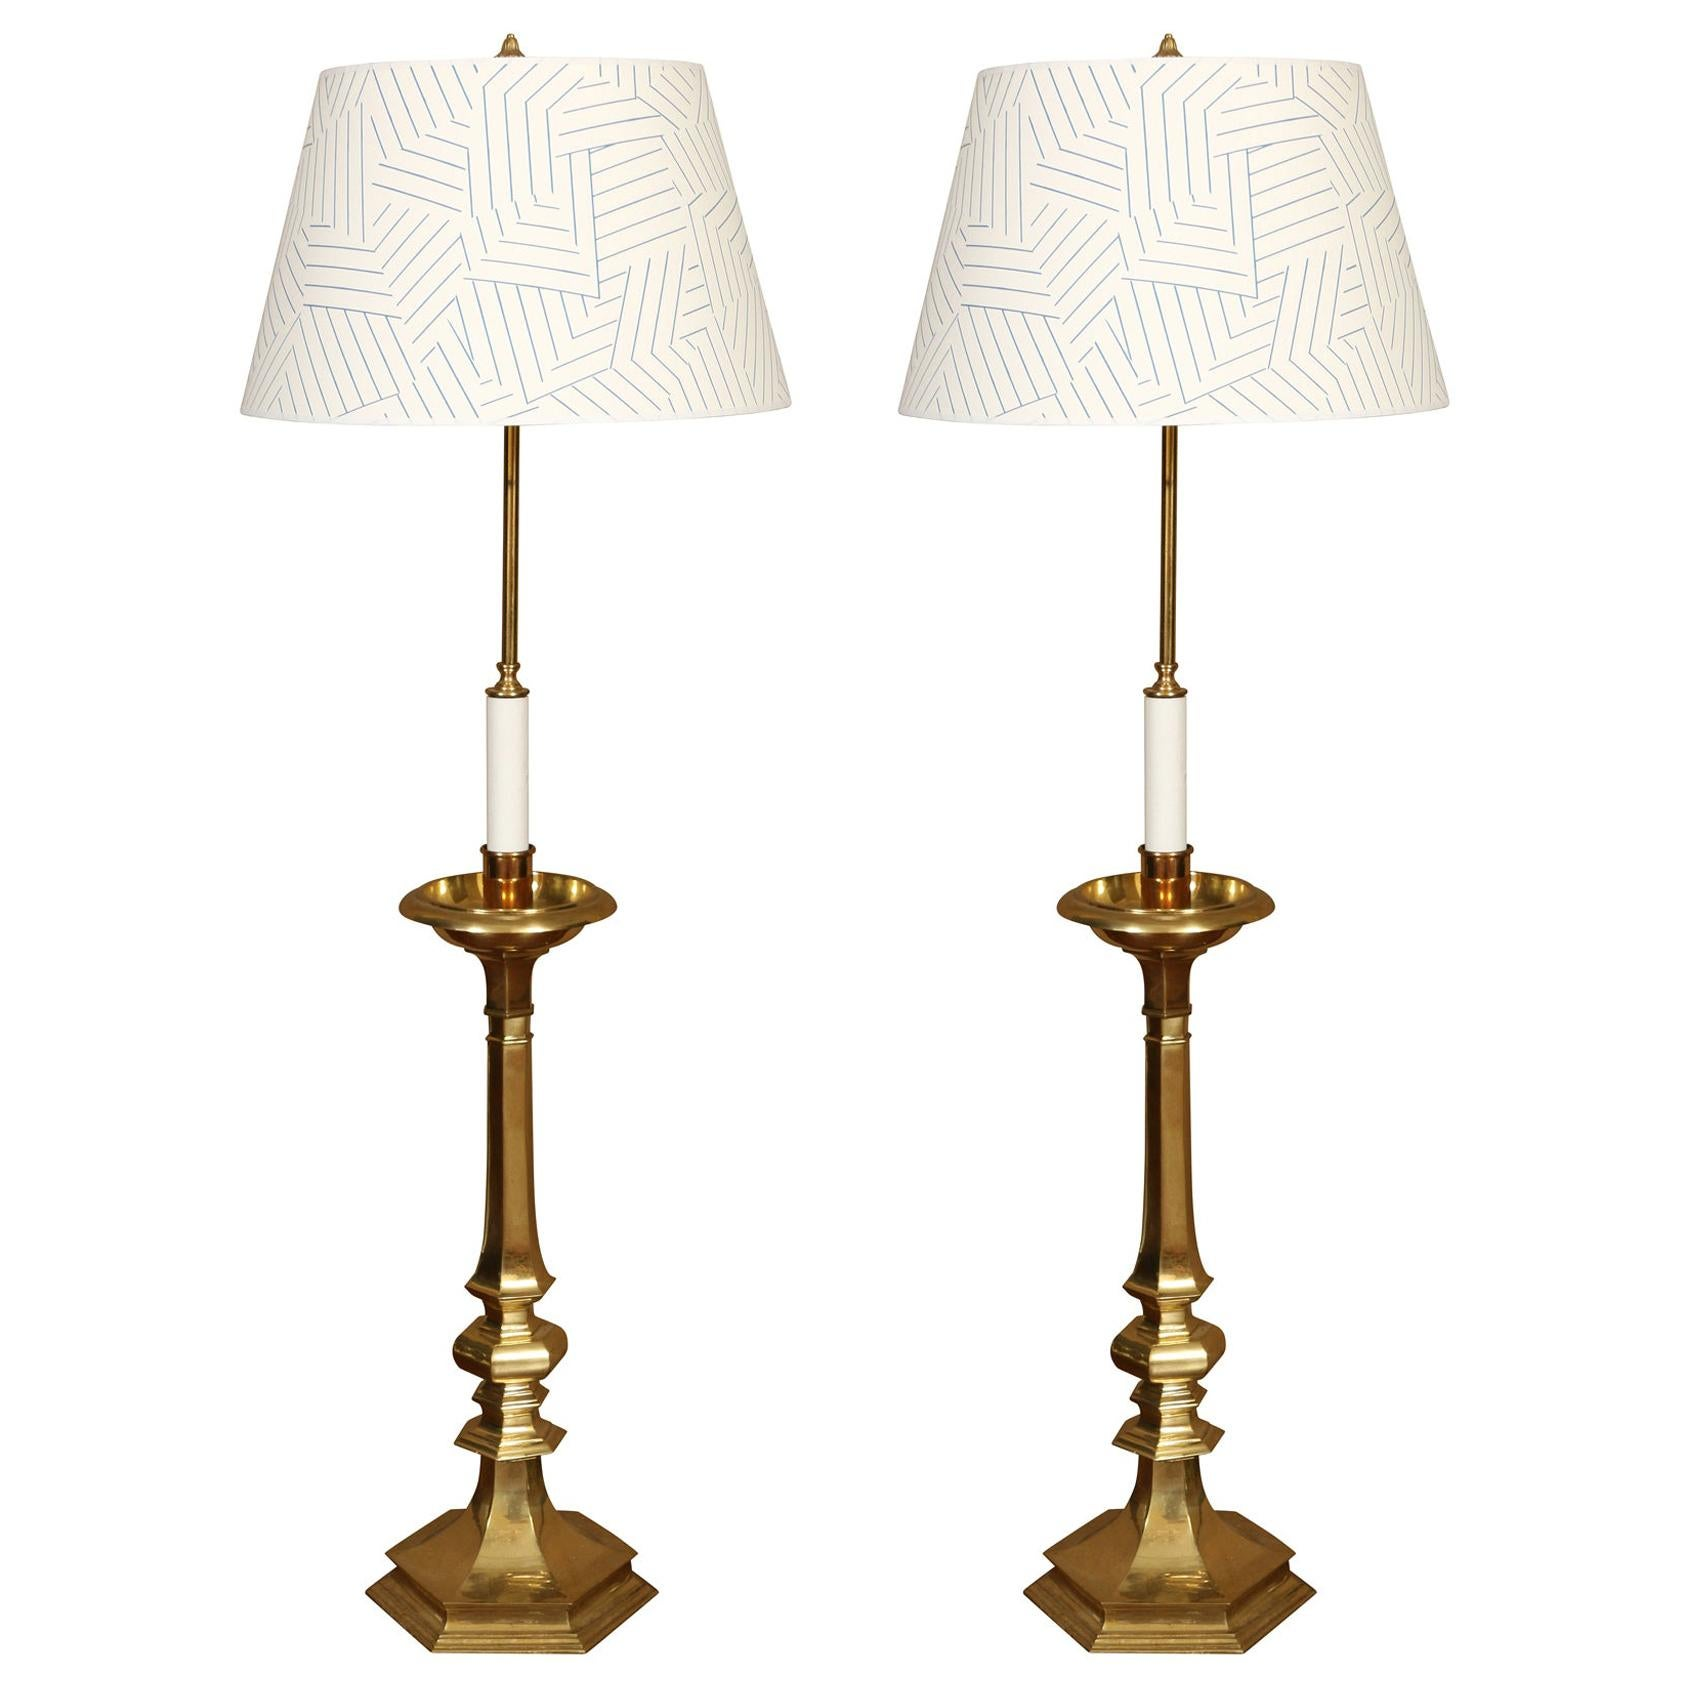 Pair of Vintage Brass Tall Candlestick Lamps